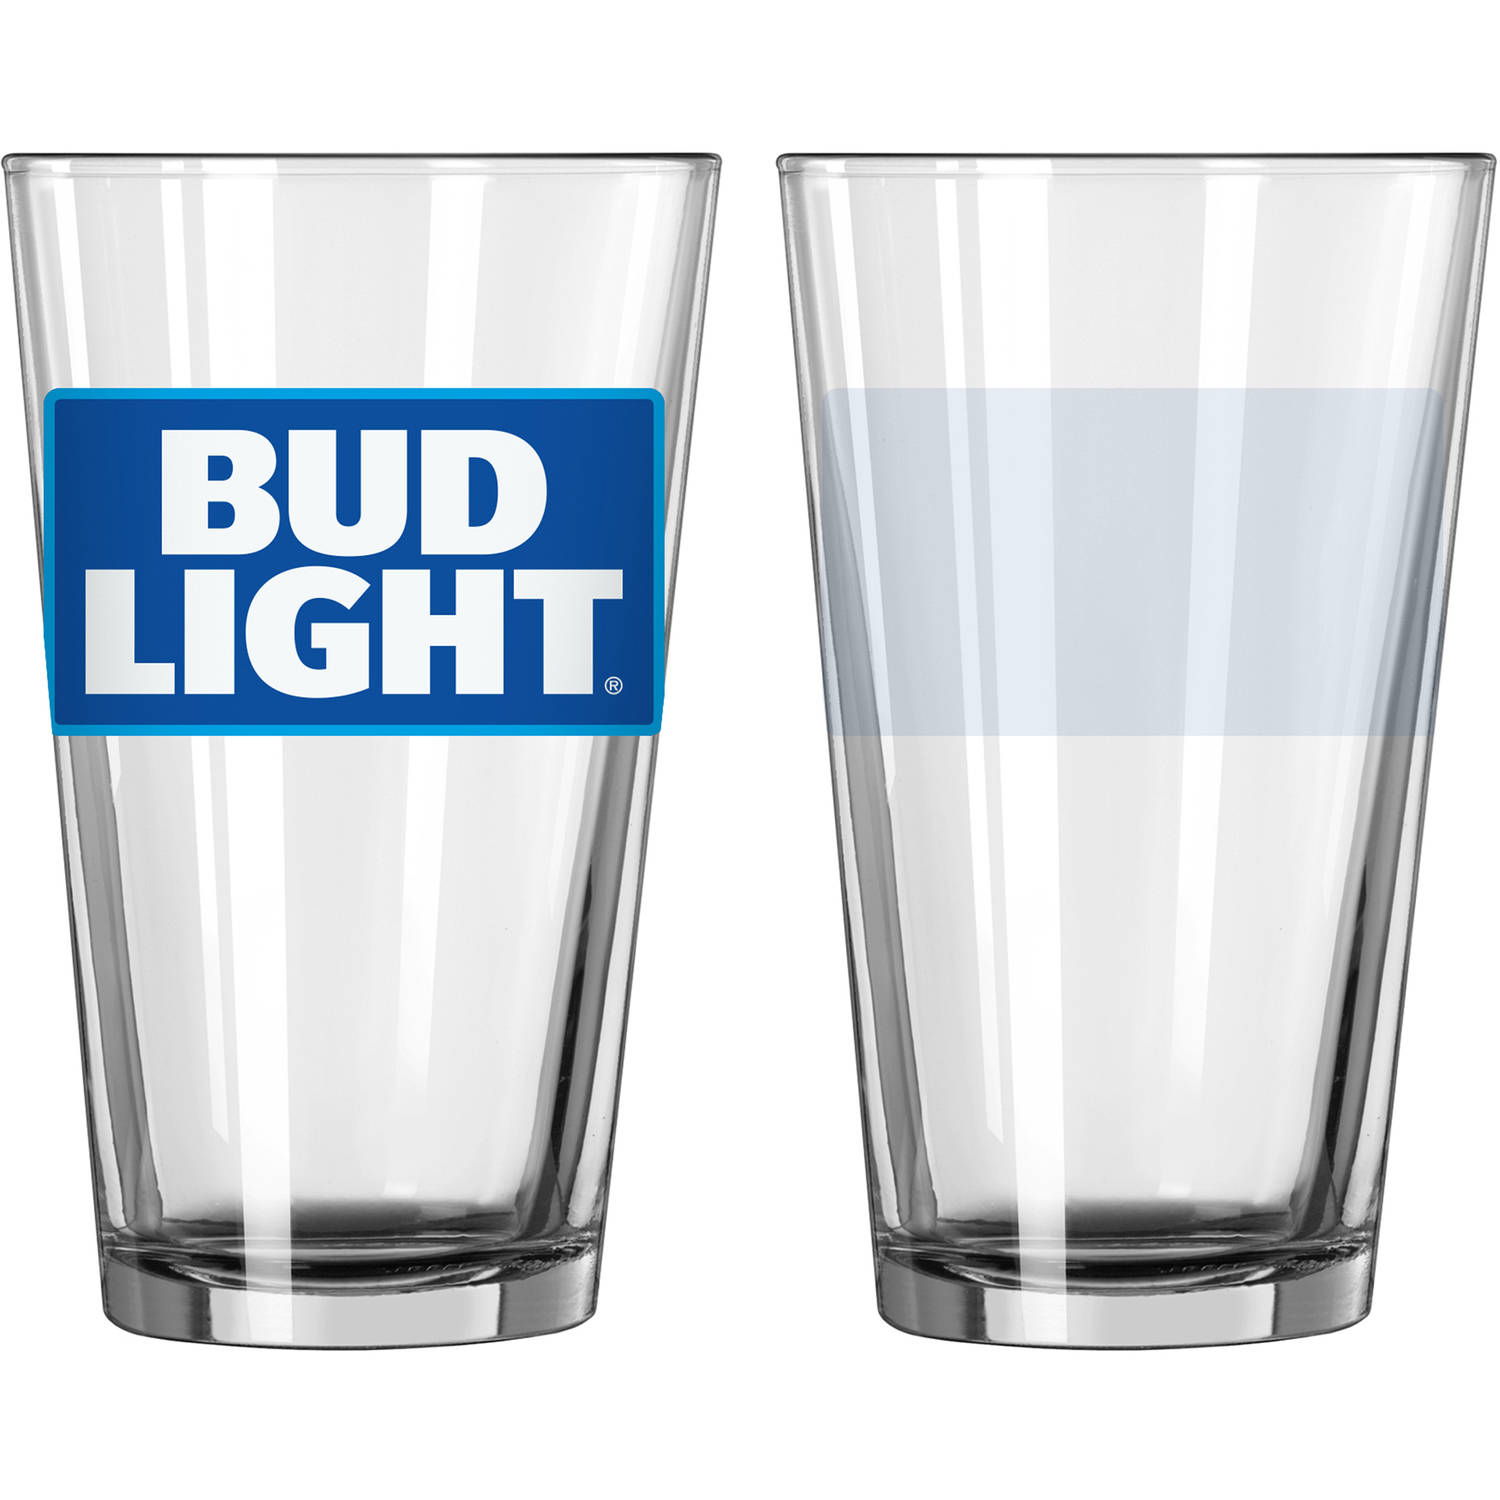 Bud Light Pint Glasses, 2pk by Boelter Brands